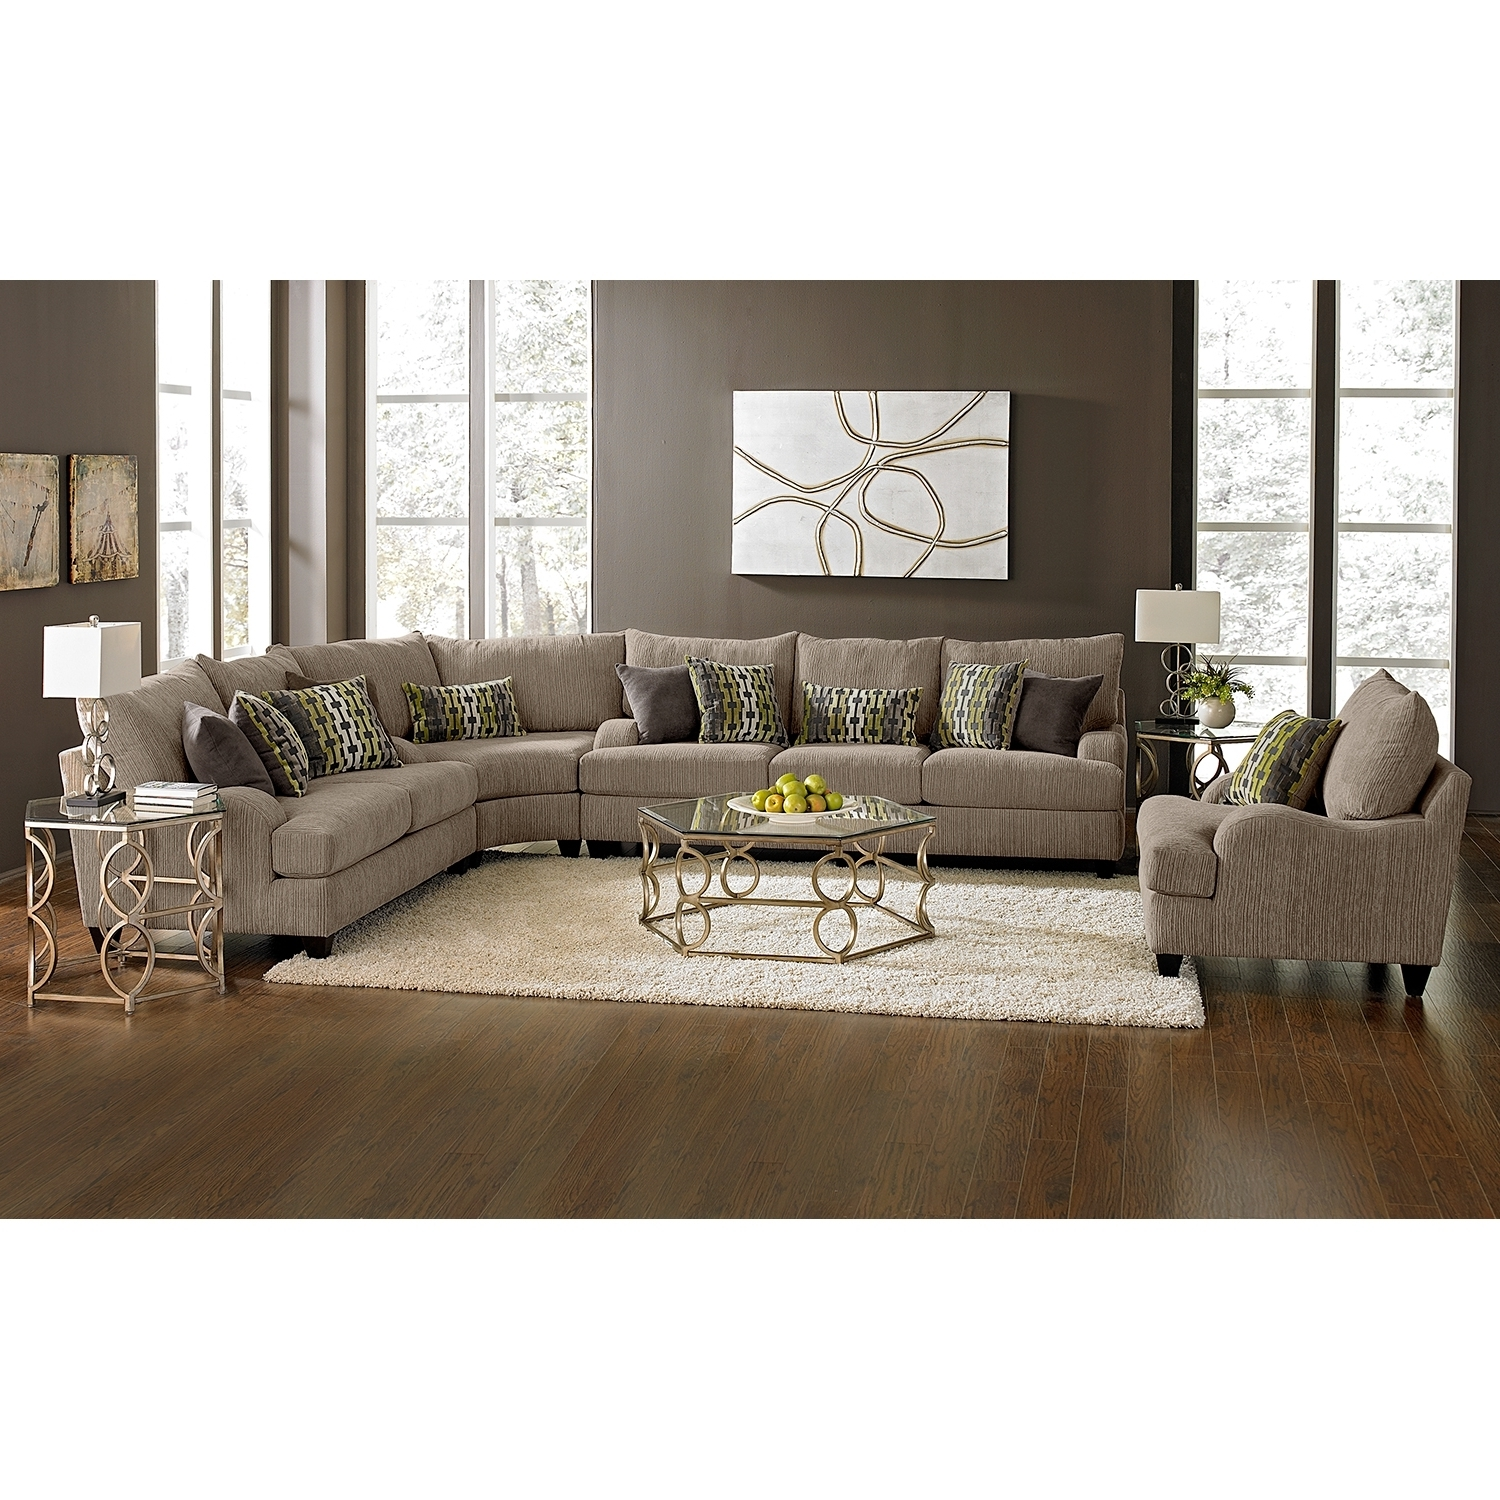 Preferred Santa Monica Ii Upholstery 3 Pc. Sectional – Value City Furniture With Value City Sectional Sofas (Gallery 13 of 20)